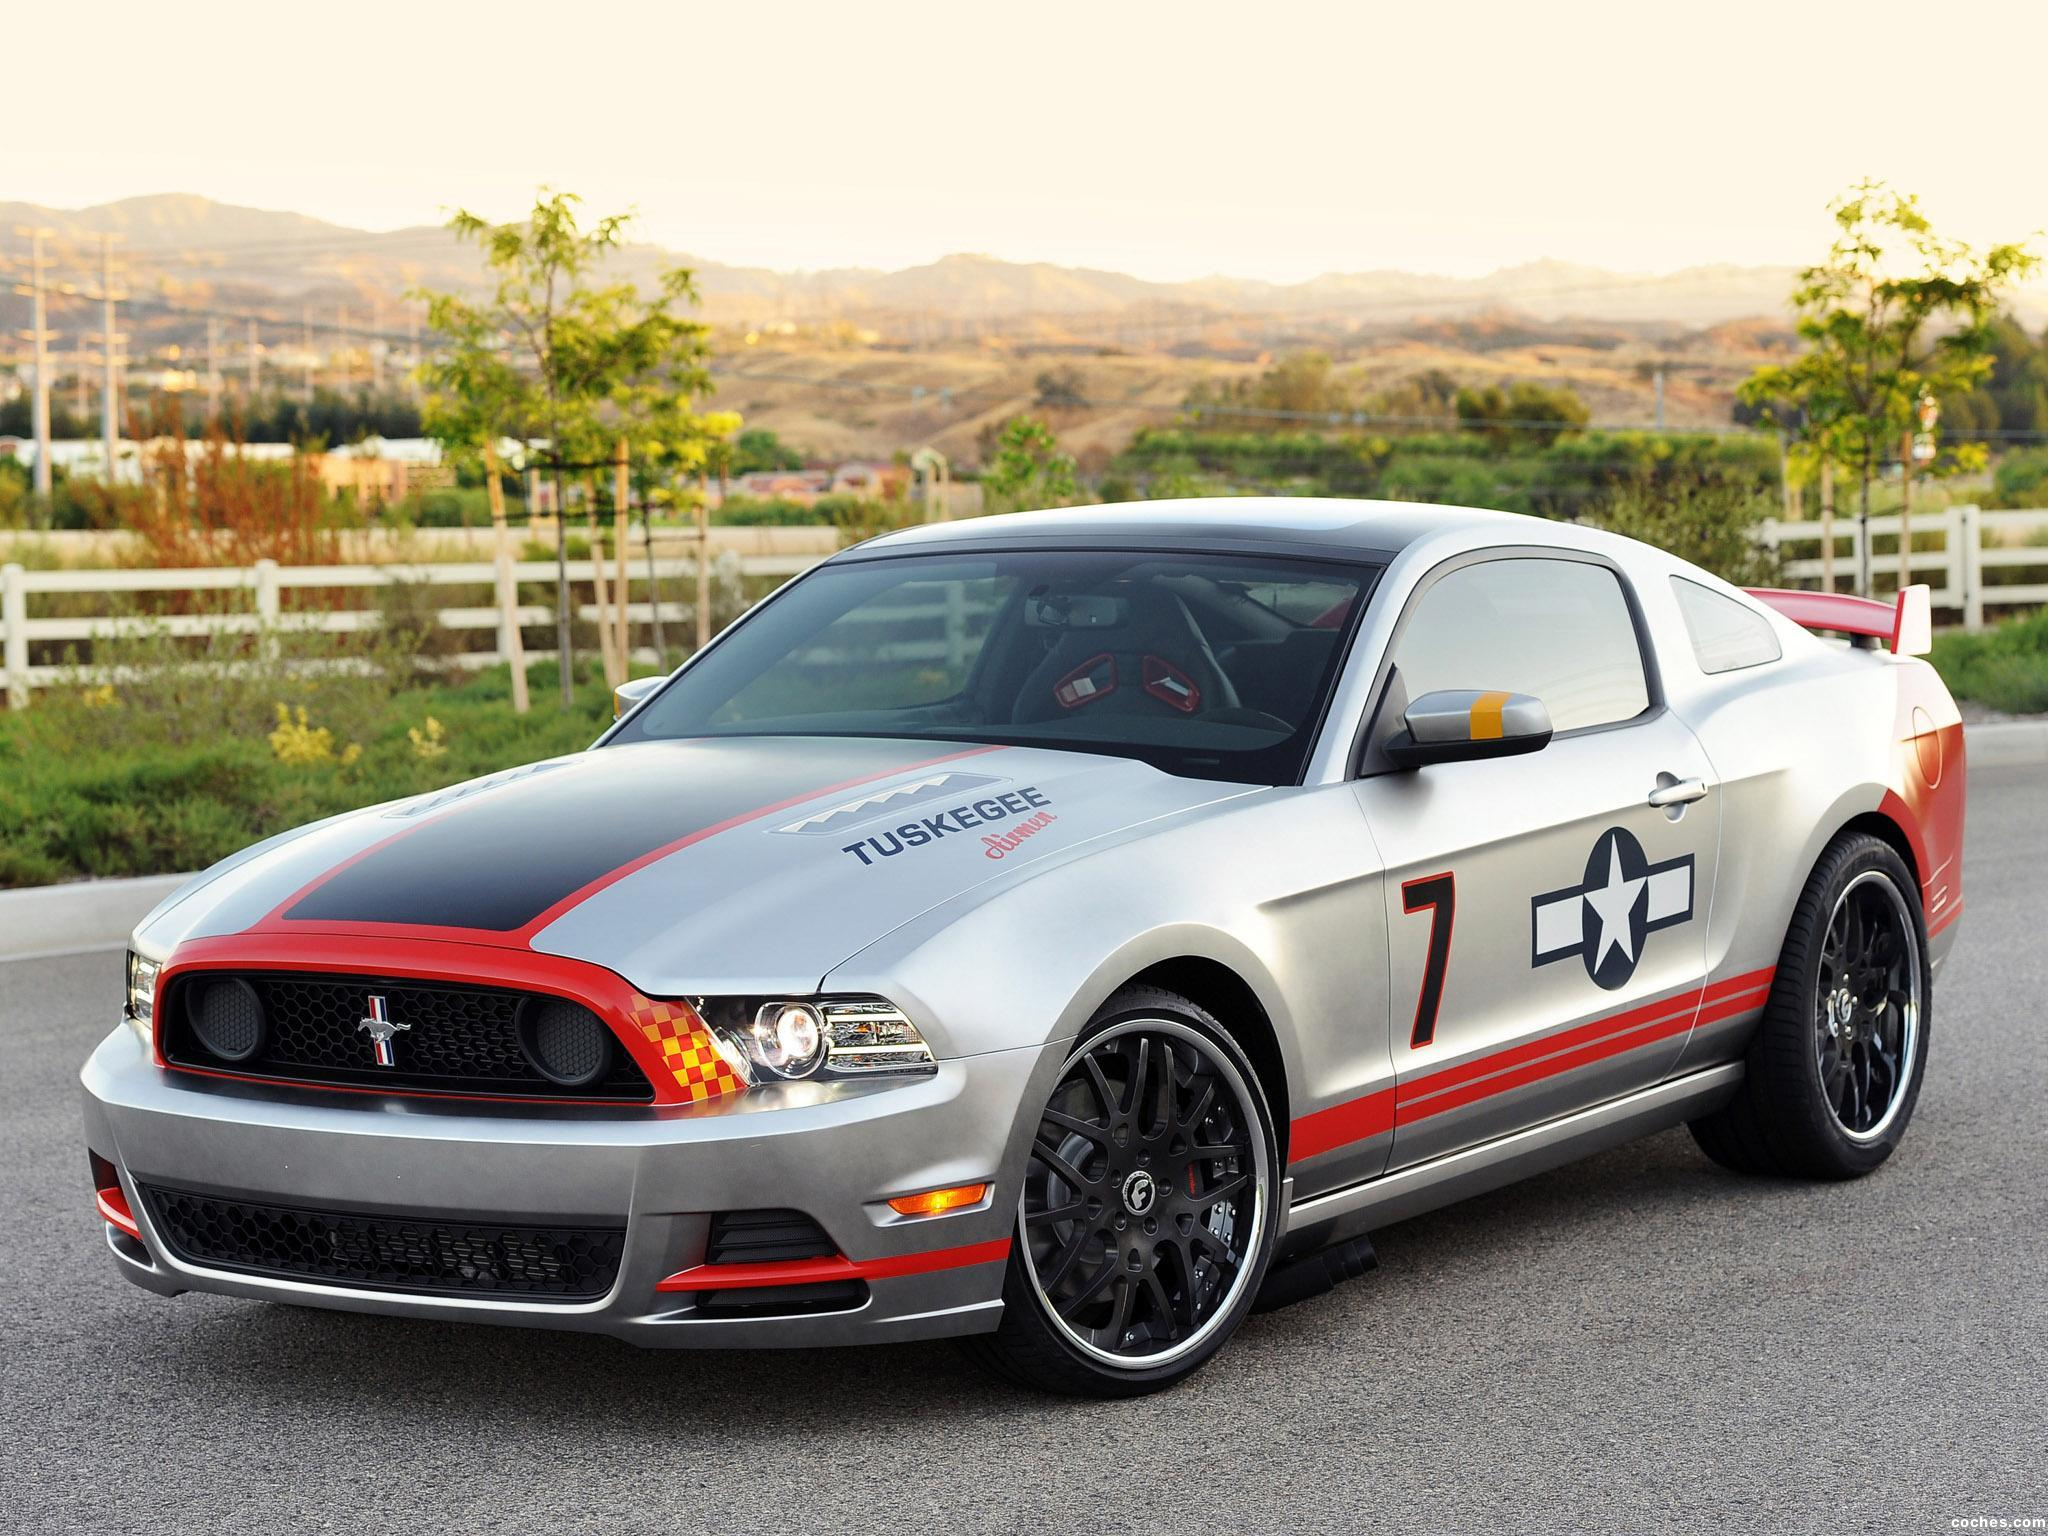 2015 Mustang Special Edition2014 Ford Gt Cs California Fotos De Red Tails 2012